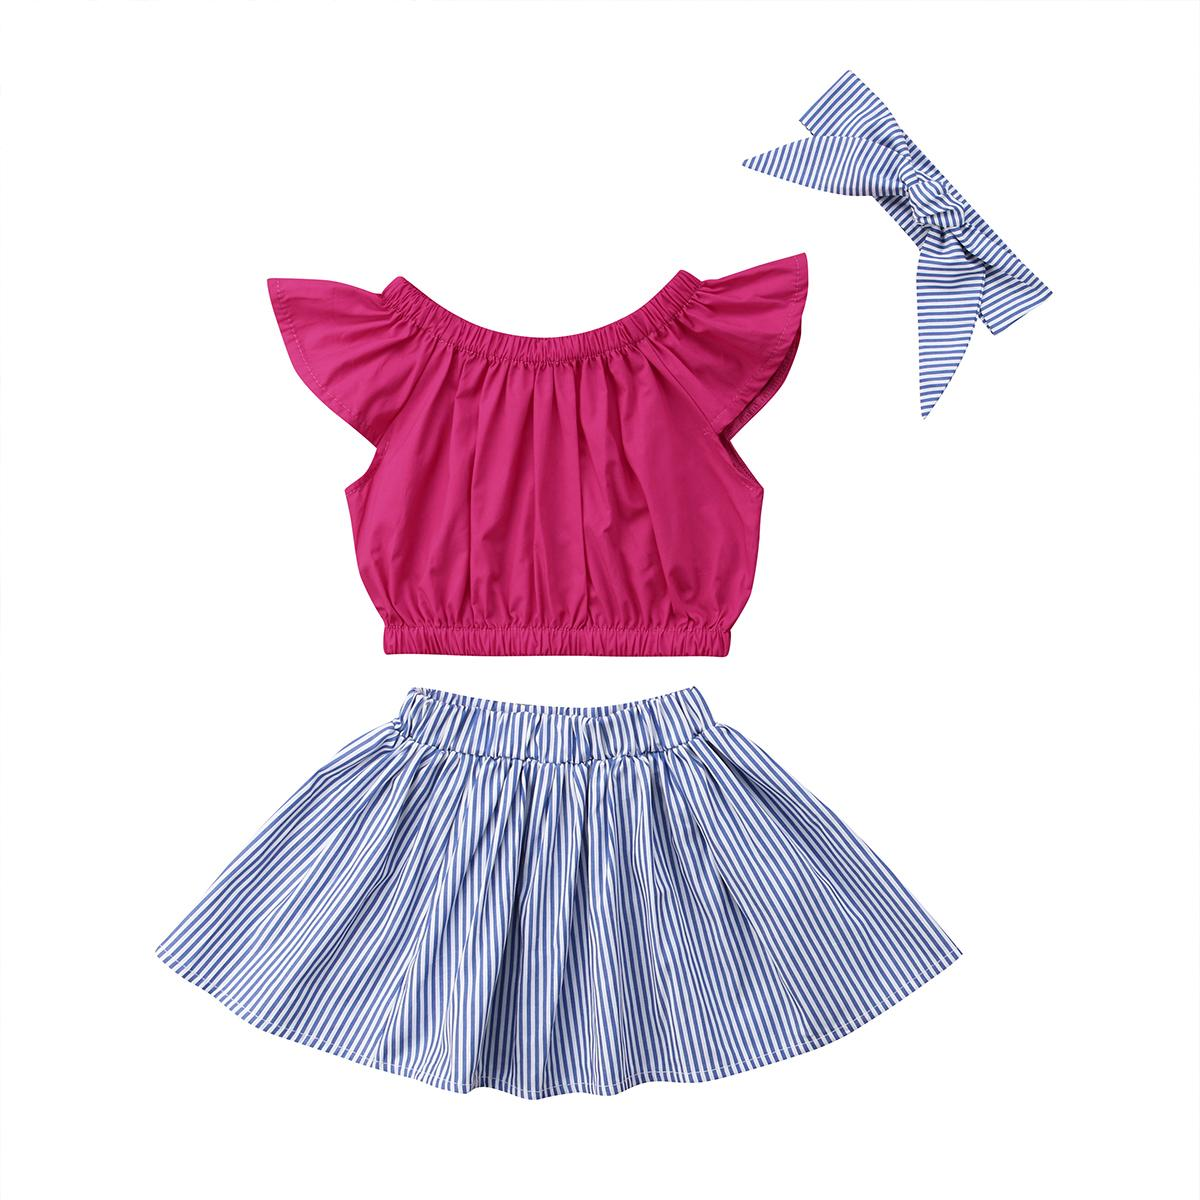 Black Skirt Toddler Kids Baby Girl 3PCS Skirt Set Ruffle Red Plaid T-Shirt Top Headband Casual Outfit Clothes